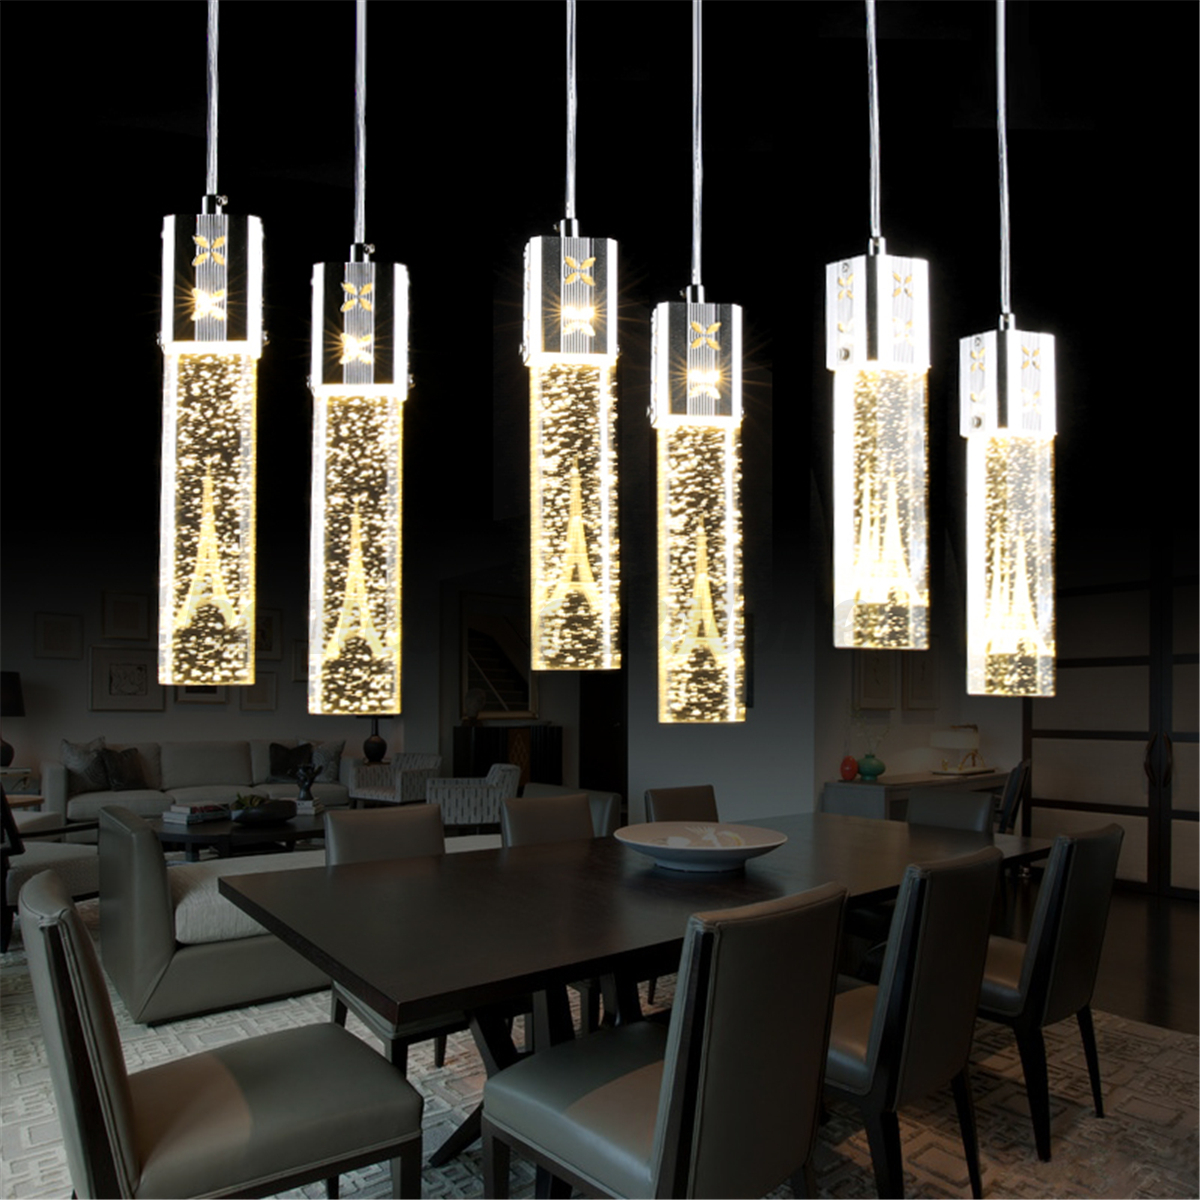 High Quality Modern Decorative Lighting National Ceiling: Tower LED Crystal Bubble Light Chandelier Ceiling Pendant